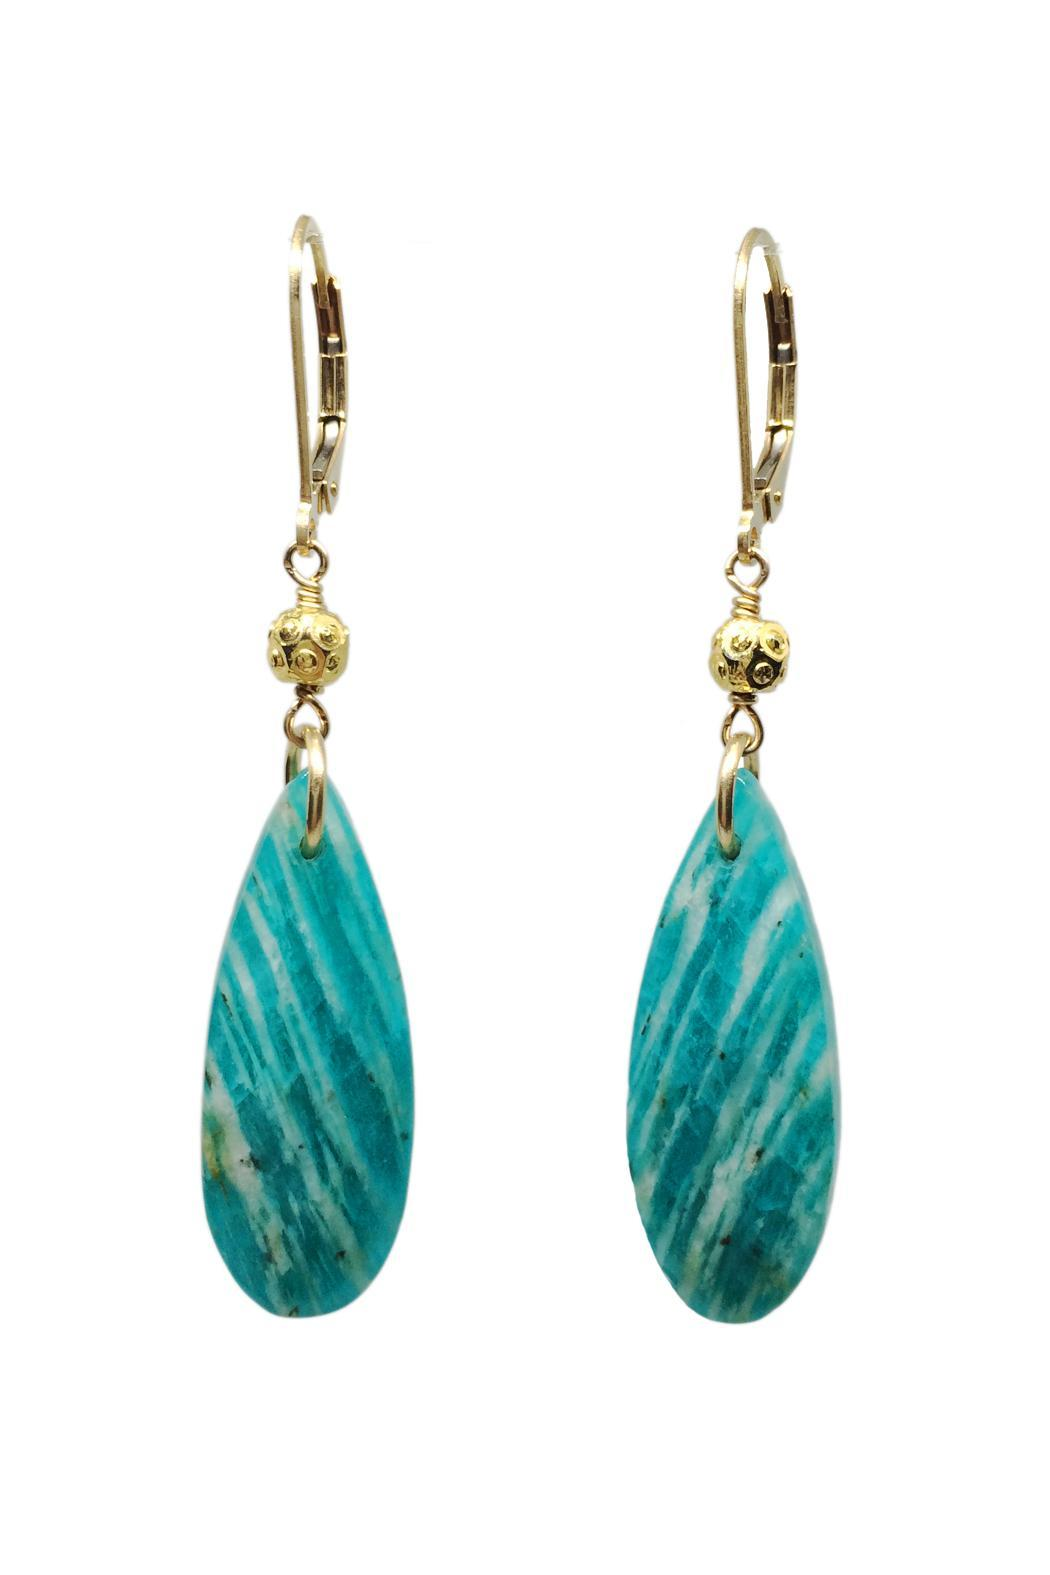 Melinda Lawton Jewelry Russian Amazonite Earrings - Main Image